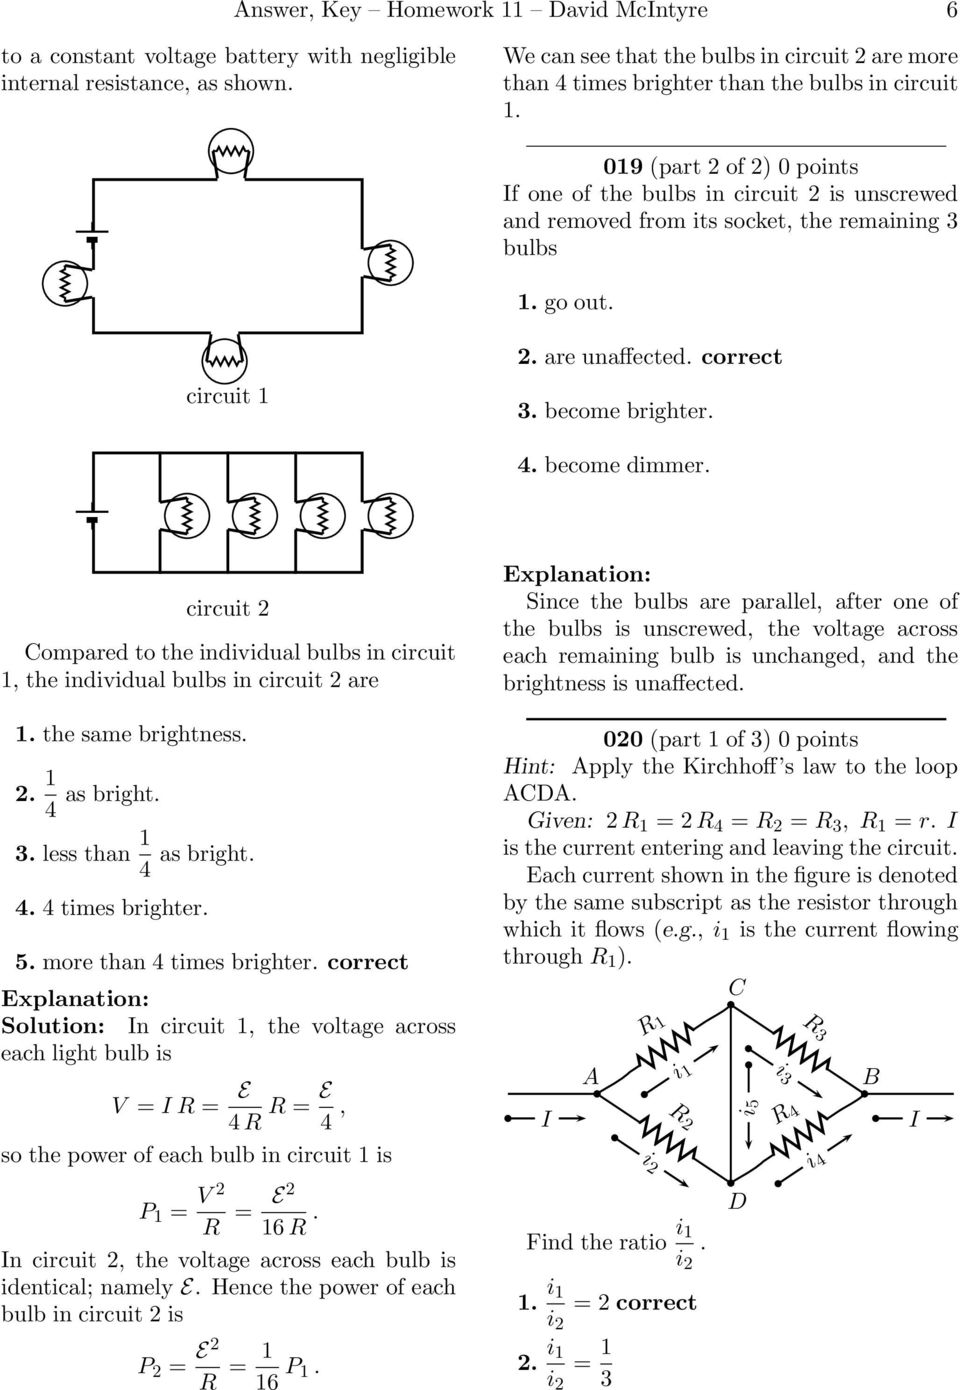 Answer Key Homework 11 David Mcintyre 1 A Pdf To Calculate The Current Through Resistor R In Two Loop Circuit 019 Part 2 Of 0 Points F One Bulbs